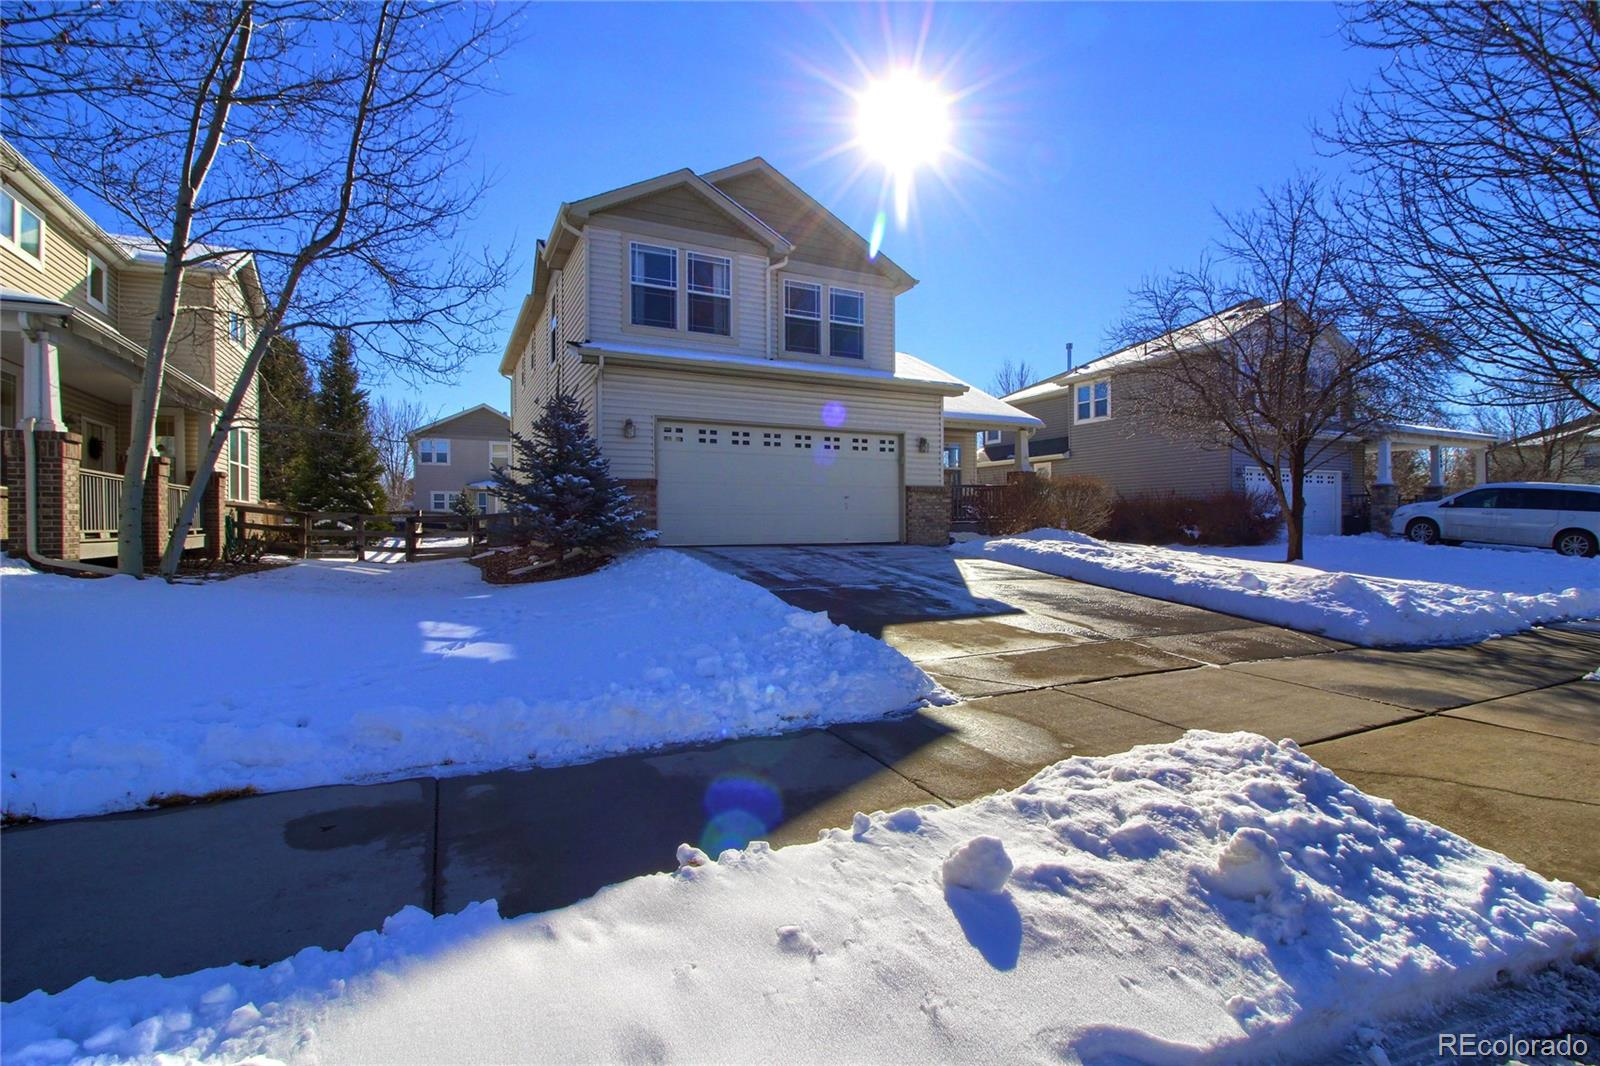 MLS# 3161208 - 33 - 1068 W 135th Court, Westminster, CO 80234